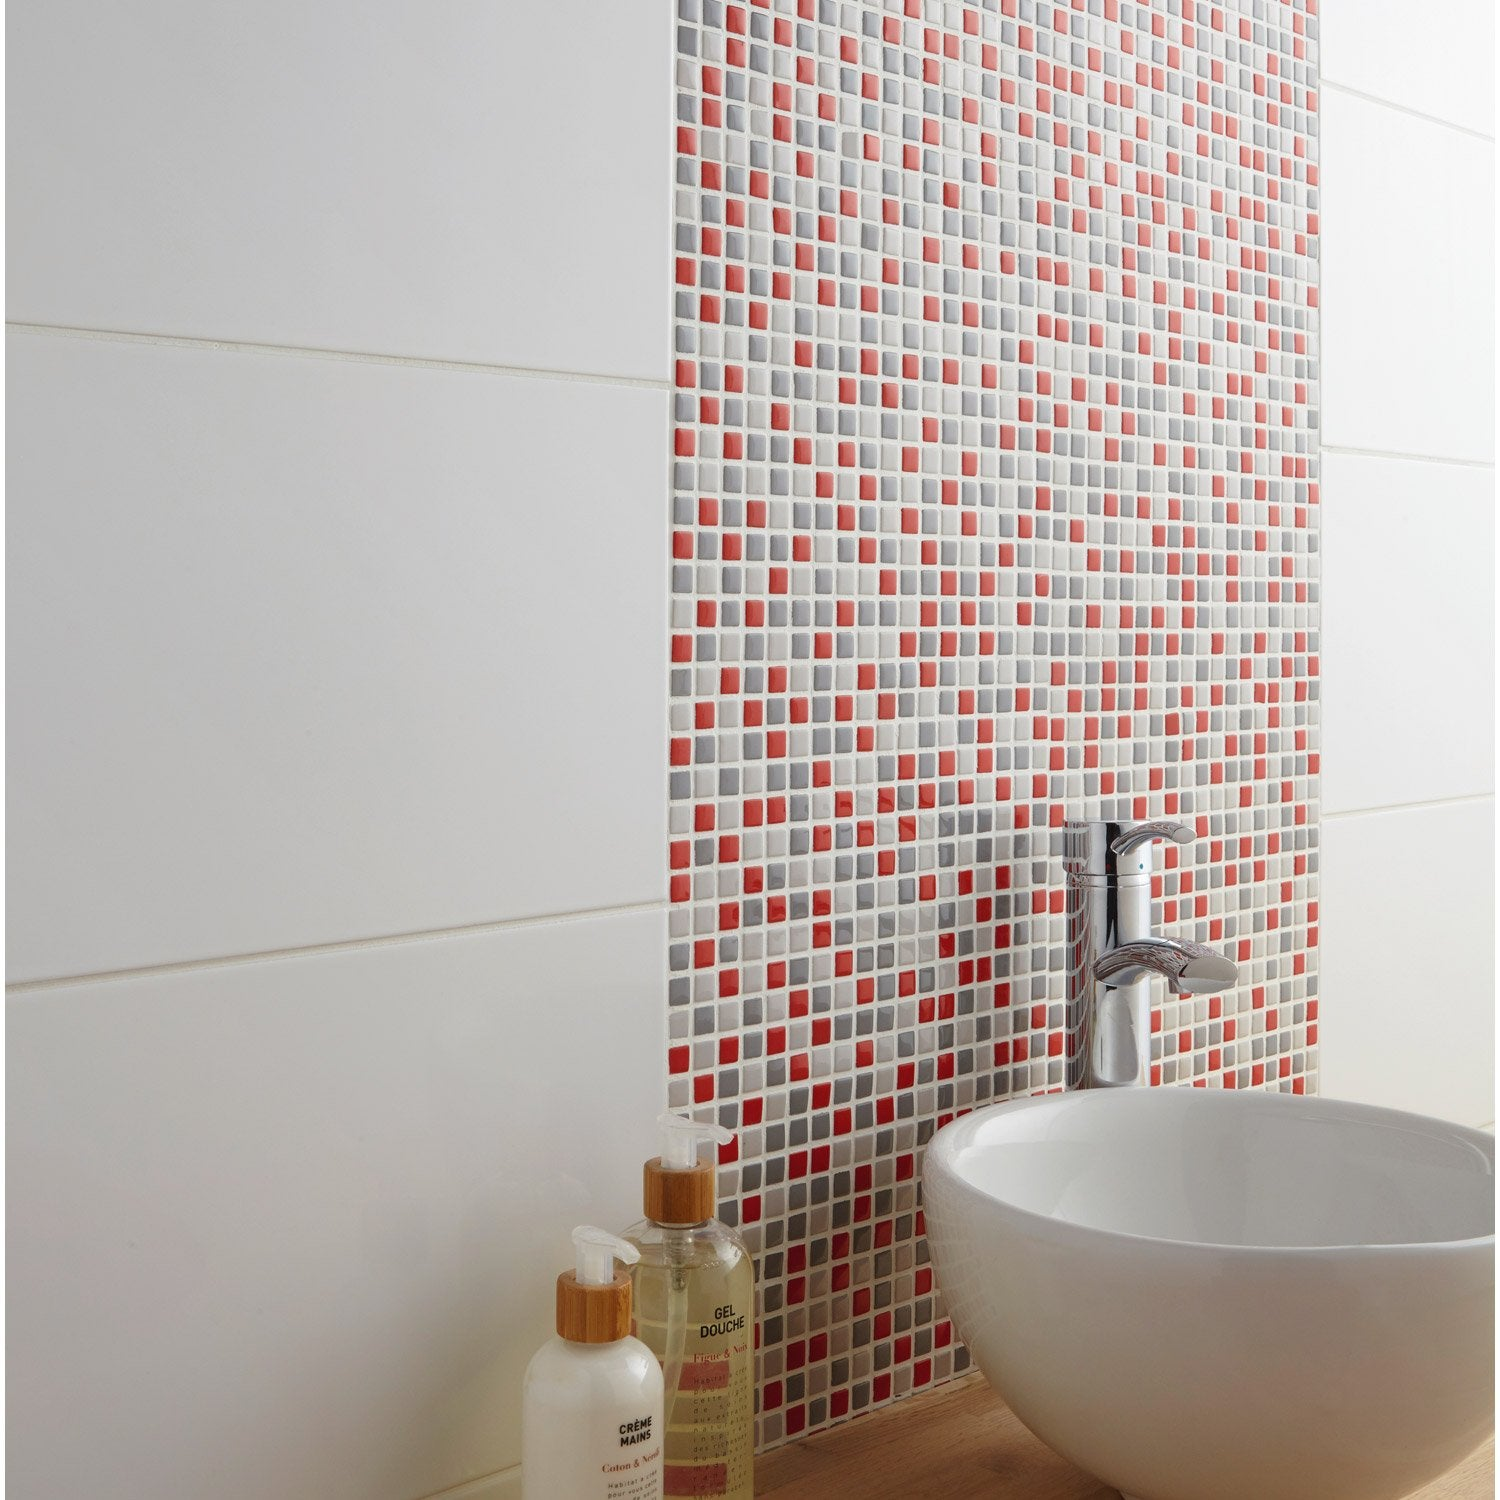 Mosa que mur pop gris et rouge leroy merlin for Carrelage mosaique leroy merlin